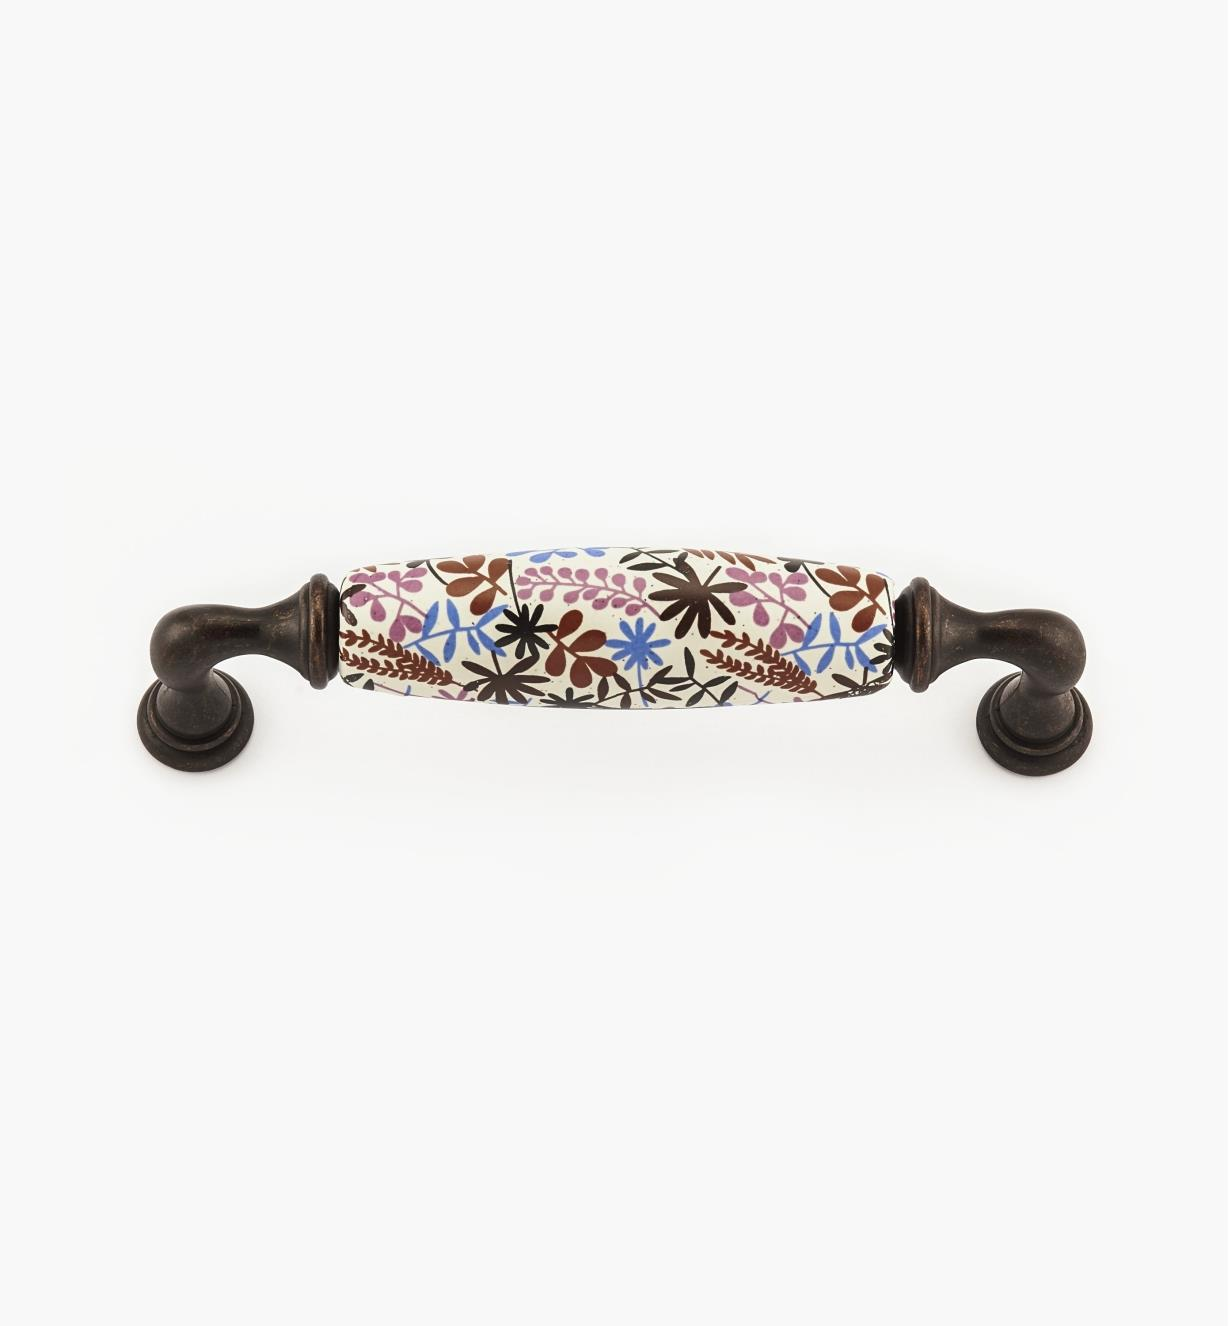 00A7750 - 128mm Floral Handle